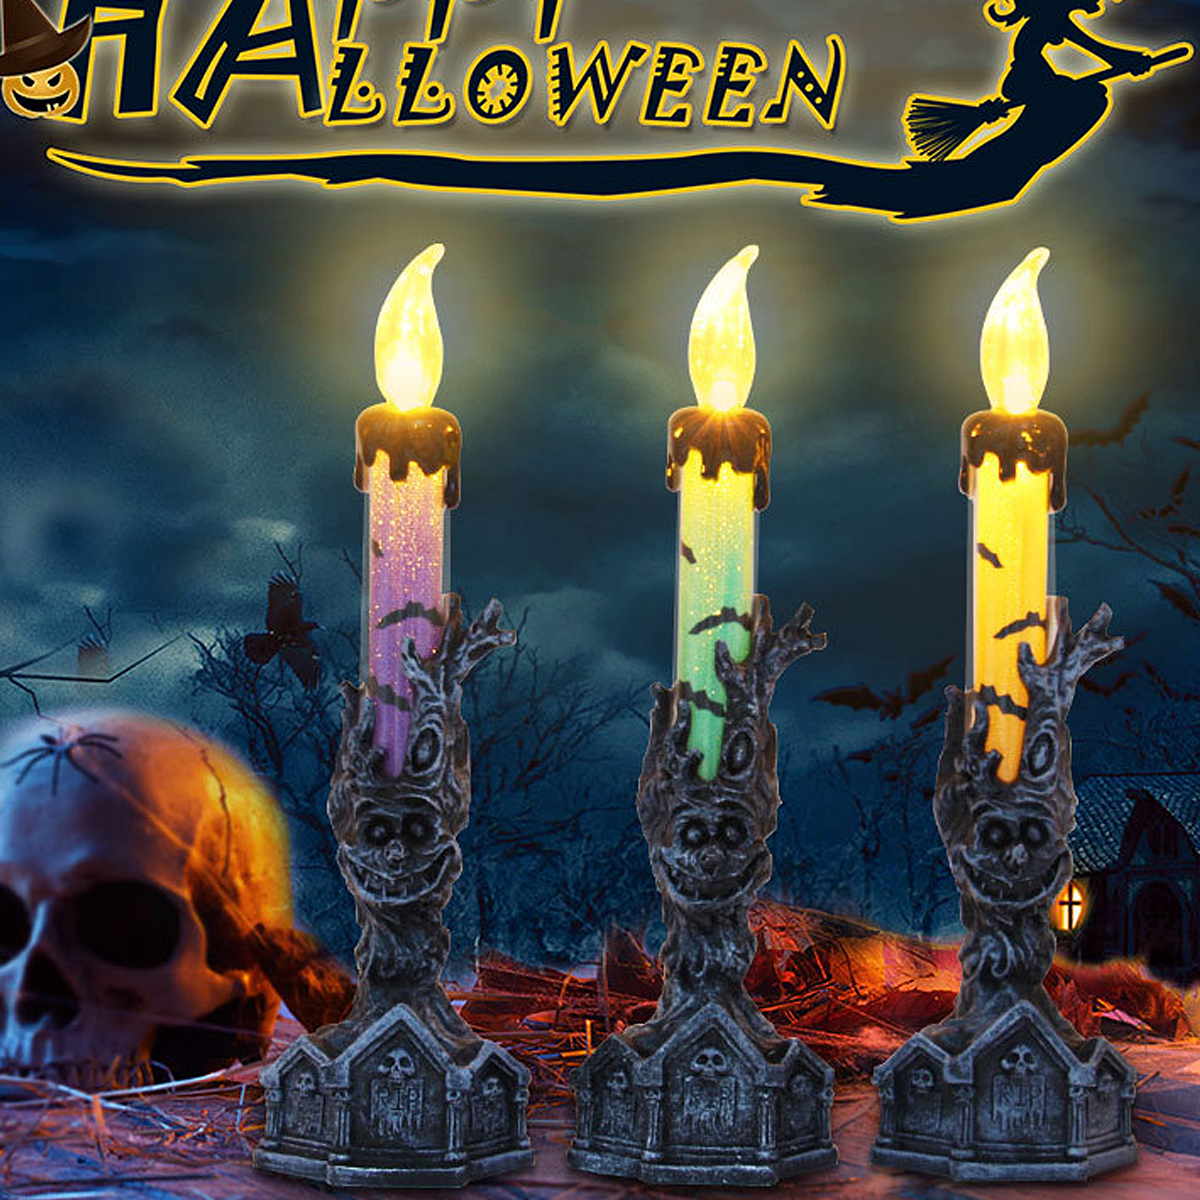 Electronic Halloween Decorations: Halloween Decoration LED Candle Lamp Skull Skeletal